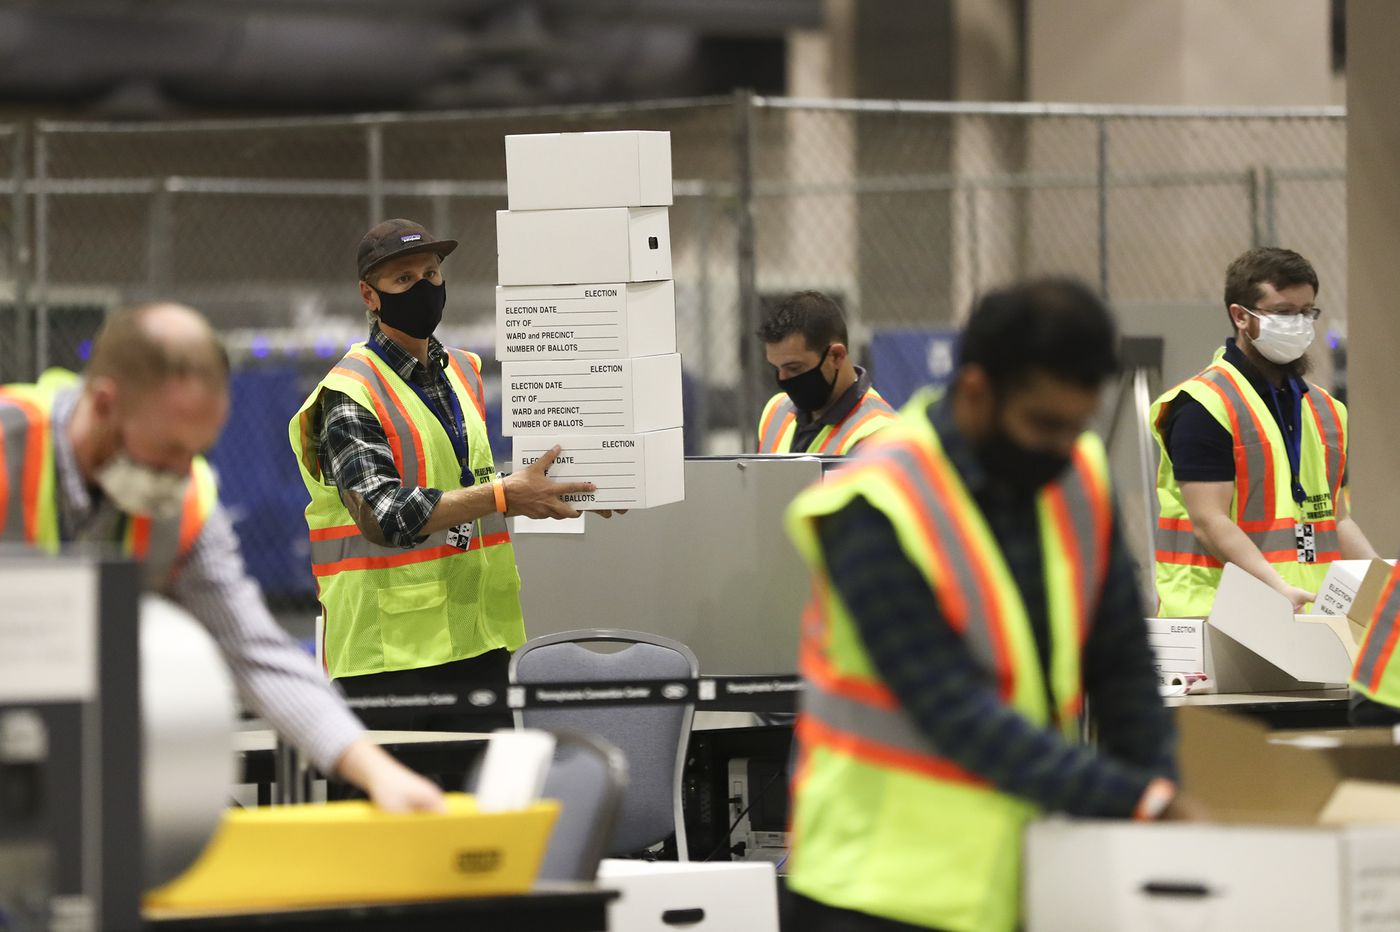 Philly is still counting mail ballots and officials say they will continue 24/7